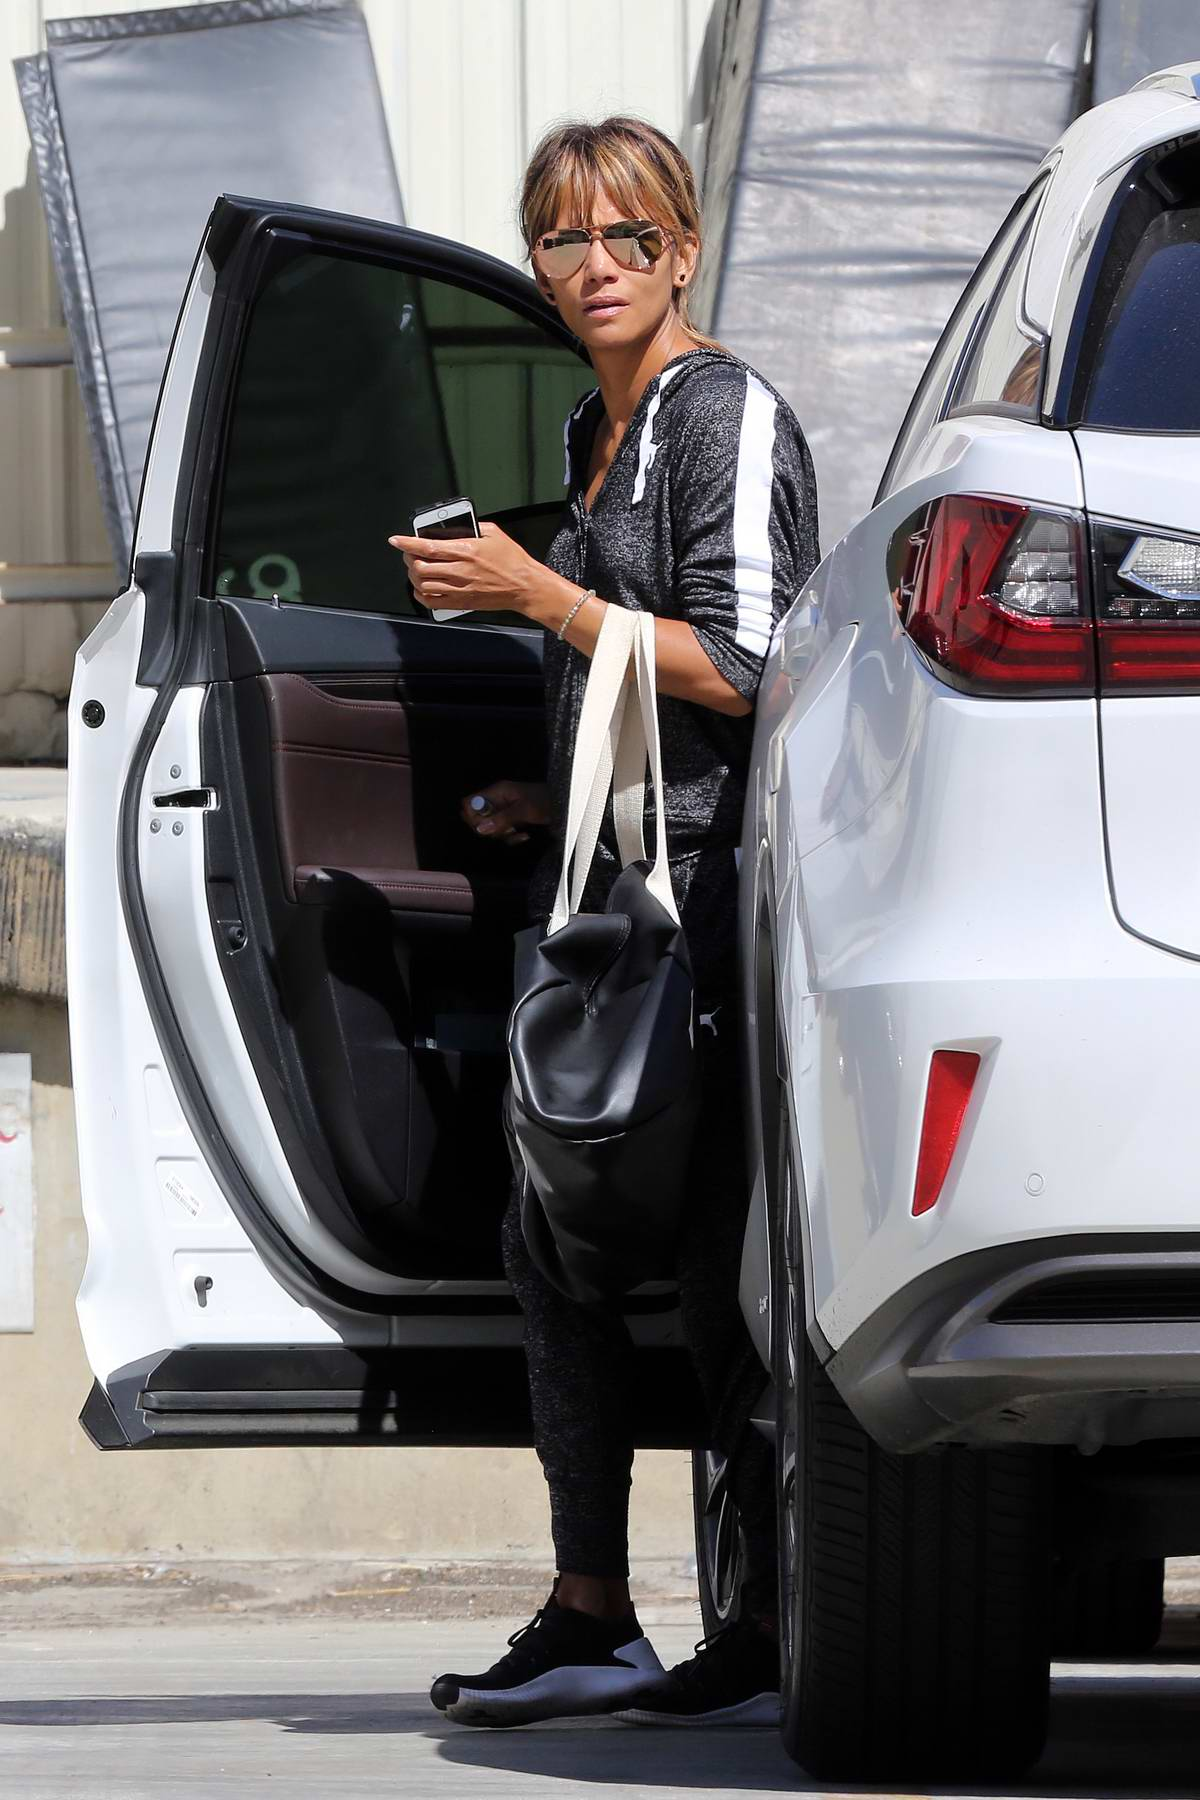 Halle Berry spotted in grey tracksuit and sneakers while out running errands in Los Angeles